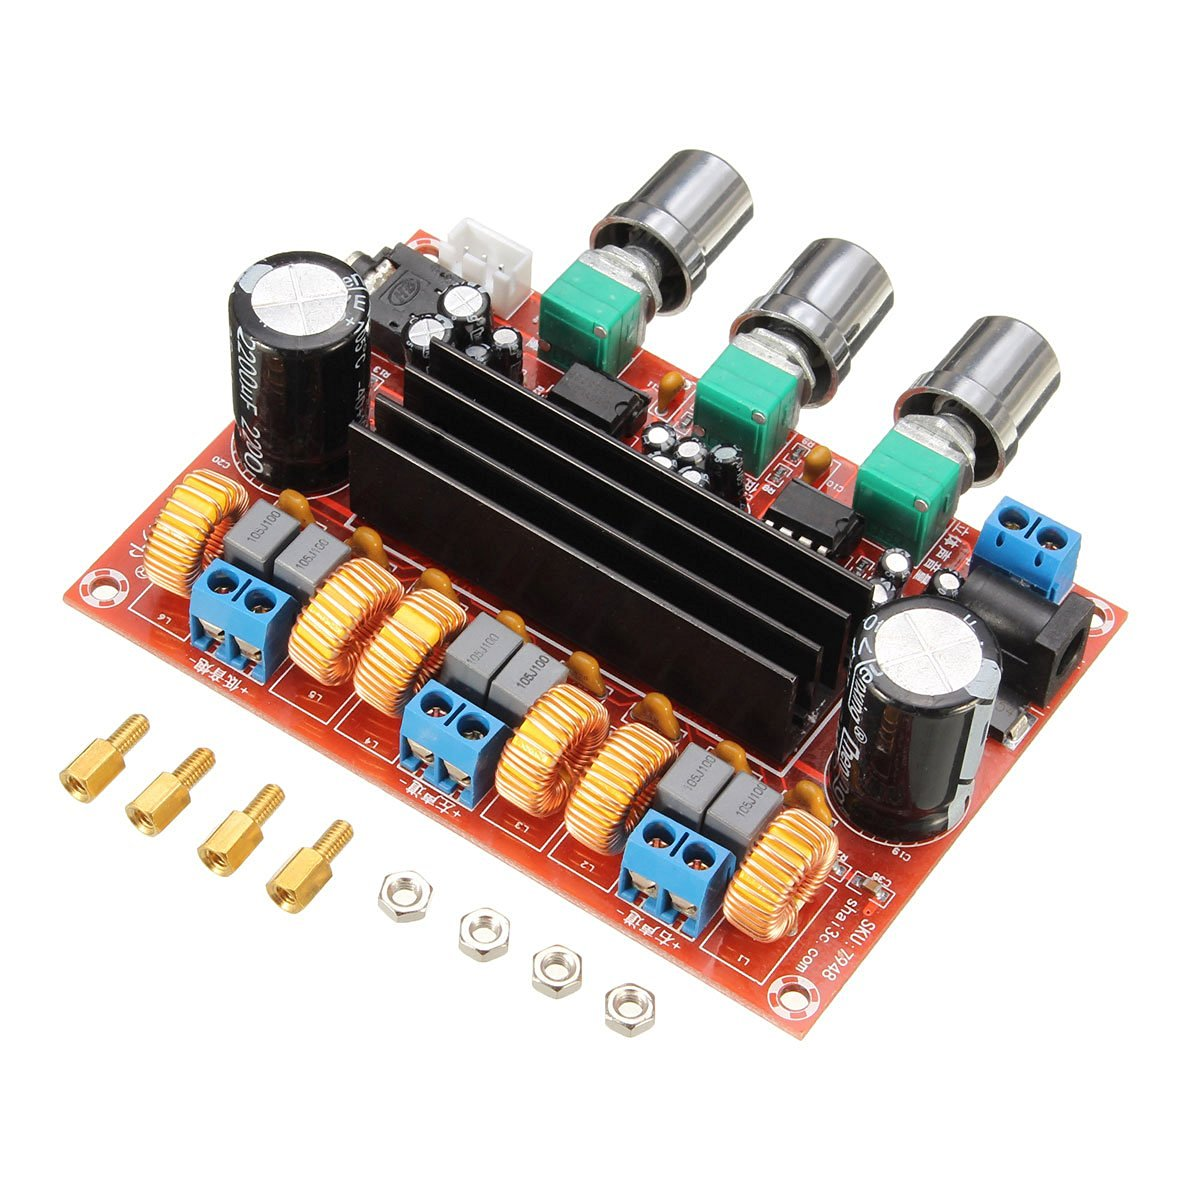 100w subwoofer amplifier circuit diagram 2001 ford mustang gt radio wiring 100 w best library board kit 50wx2 high power 2 1 channel digital hi fi bass stereo